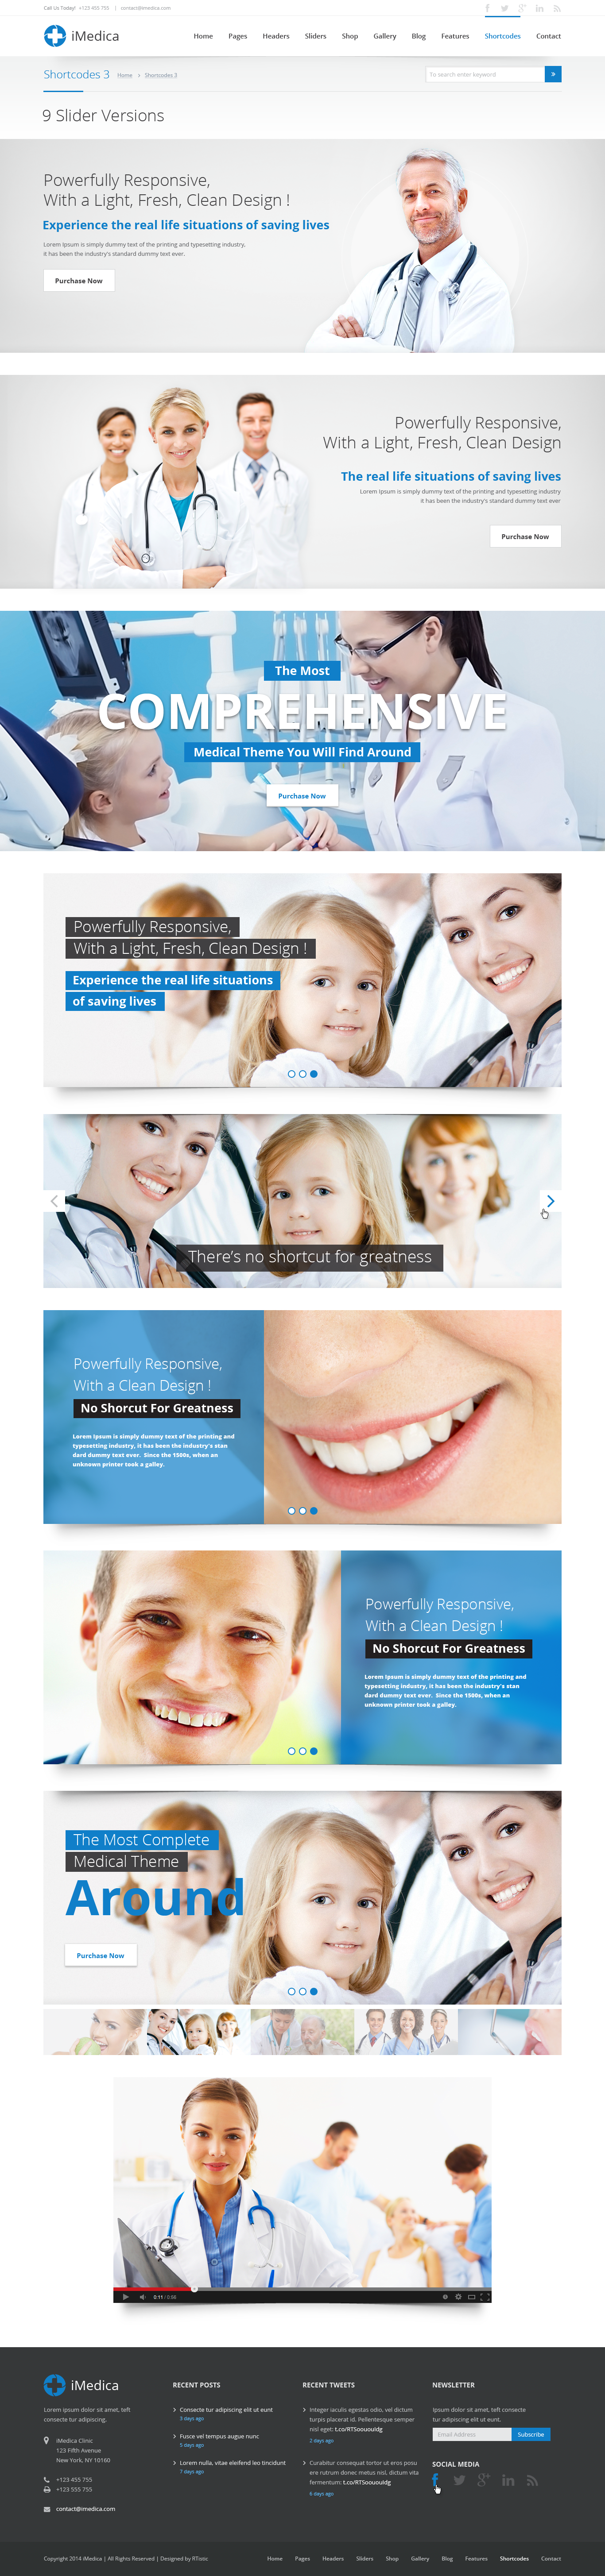 iMedica - Flat, Responsive Medical & Health Theme